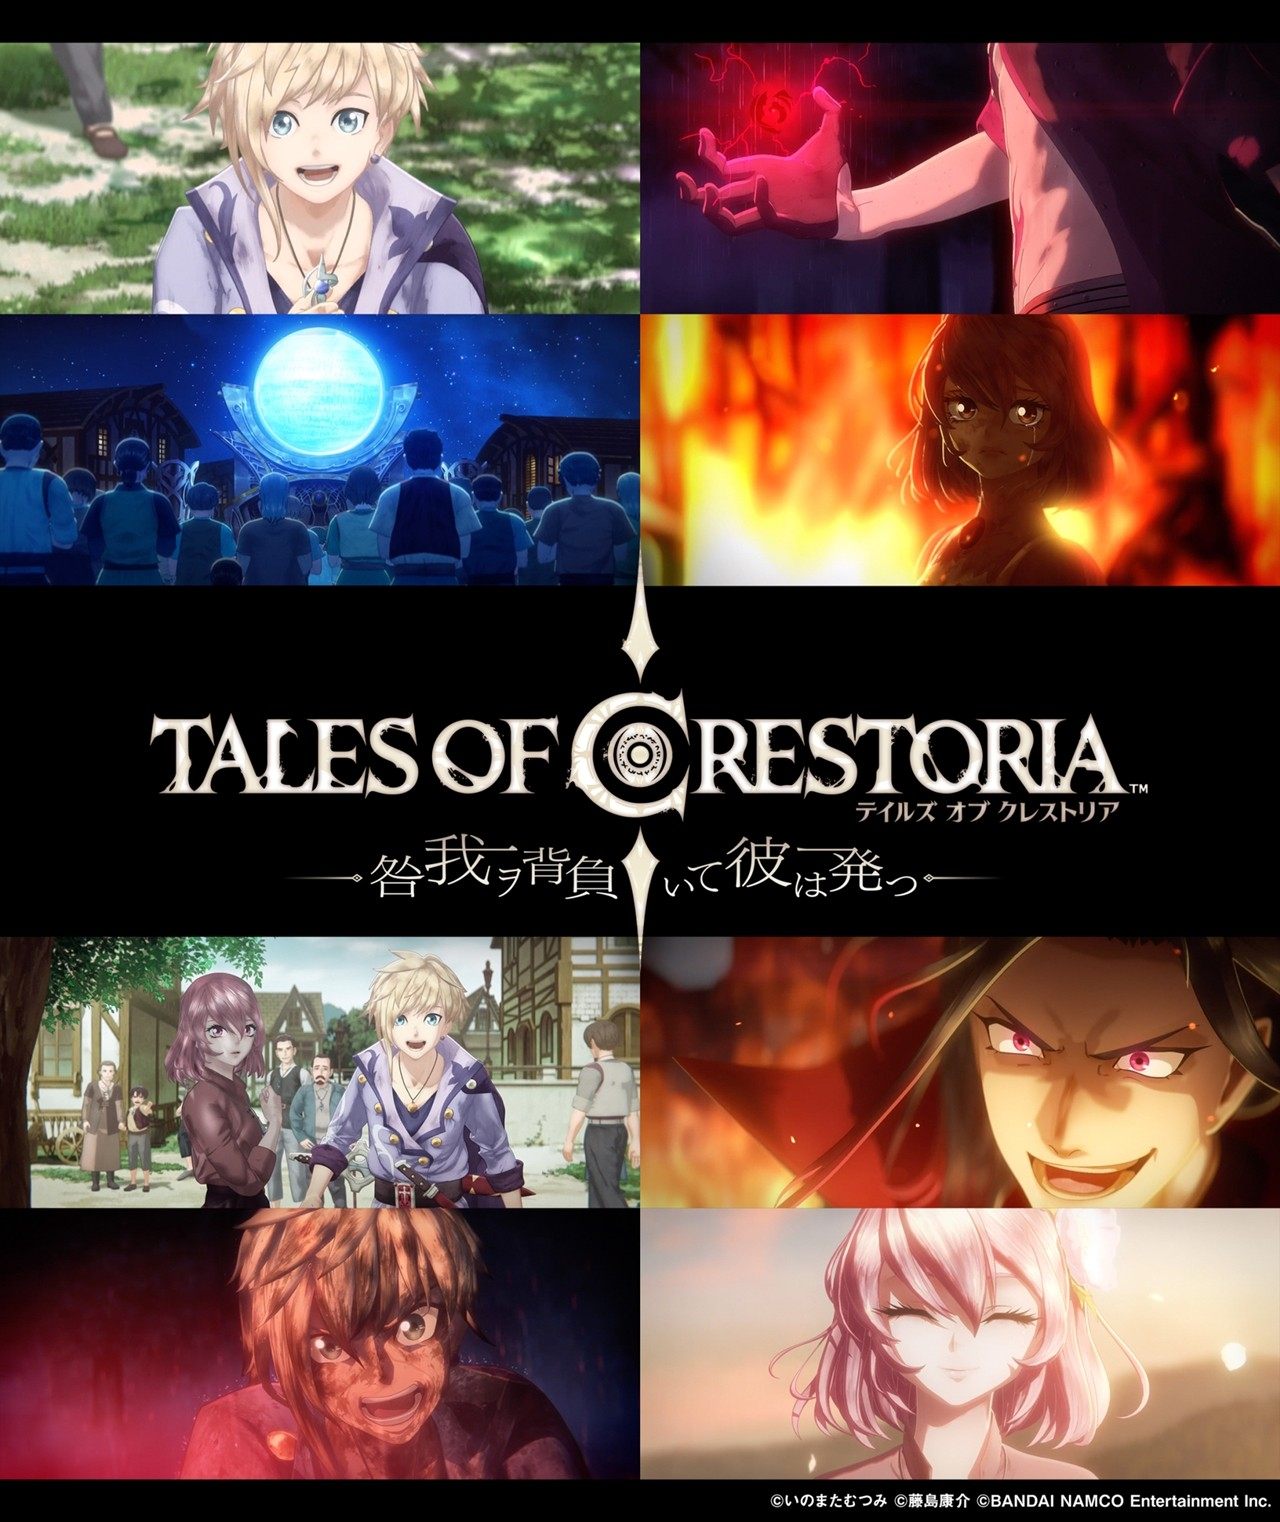 TALES OF CRESTORIA ーTHE WAKE OF SINー